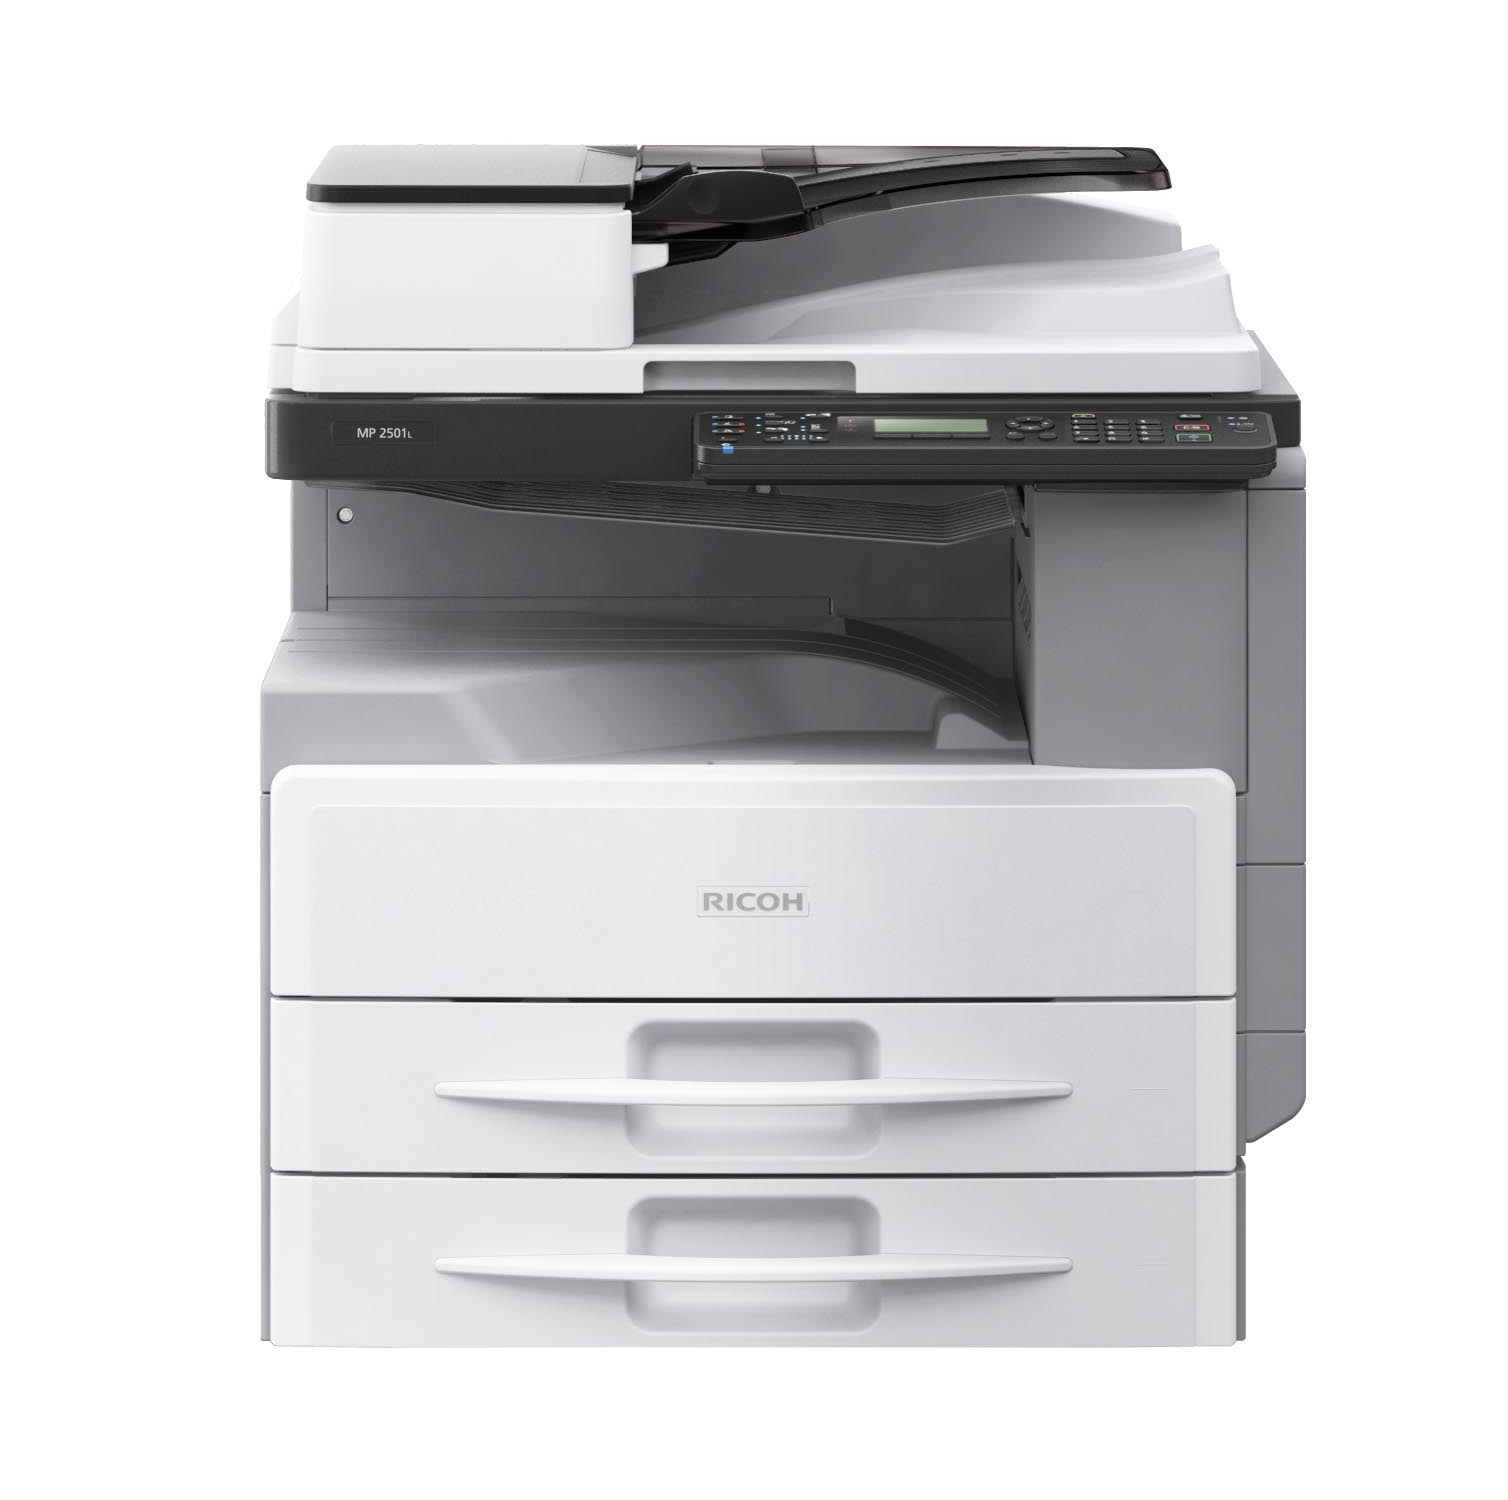 Máy photocopy Ricoh MP2501L (Copy/ Print/ Scan/DADF/ Duplex)